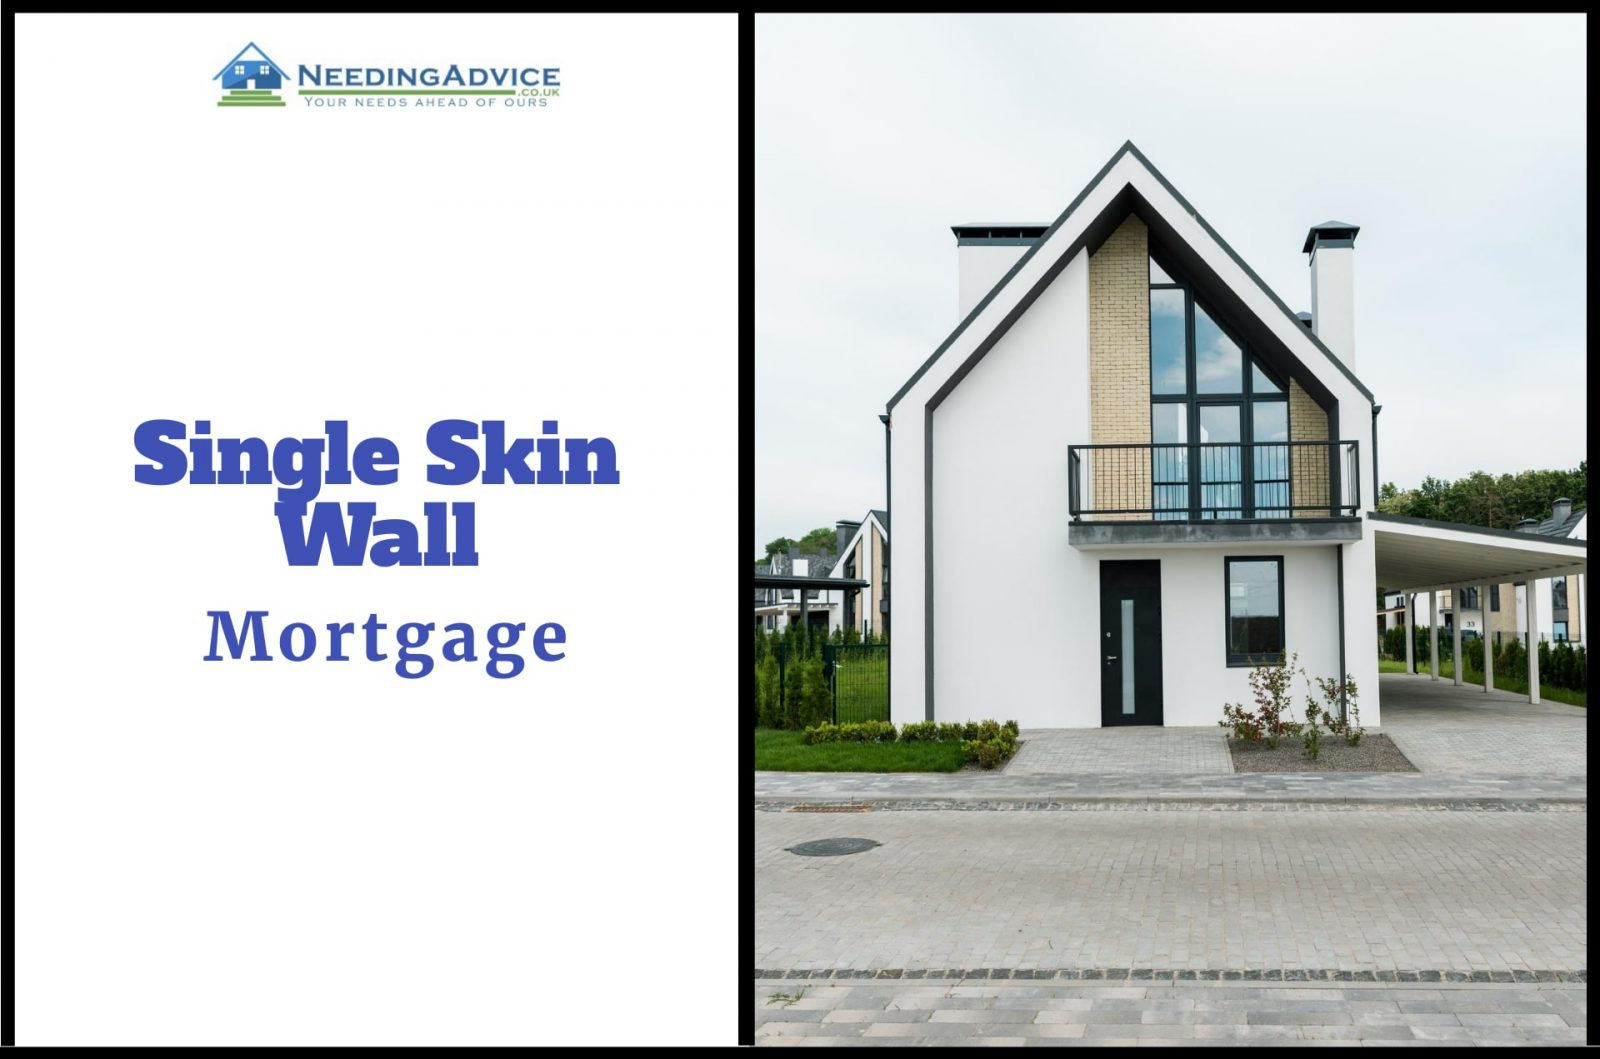 Single Skin wall mortgages